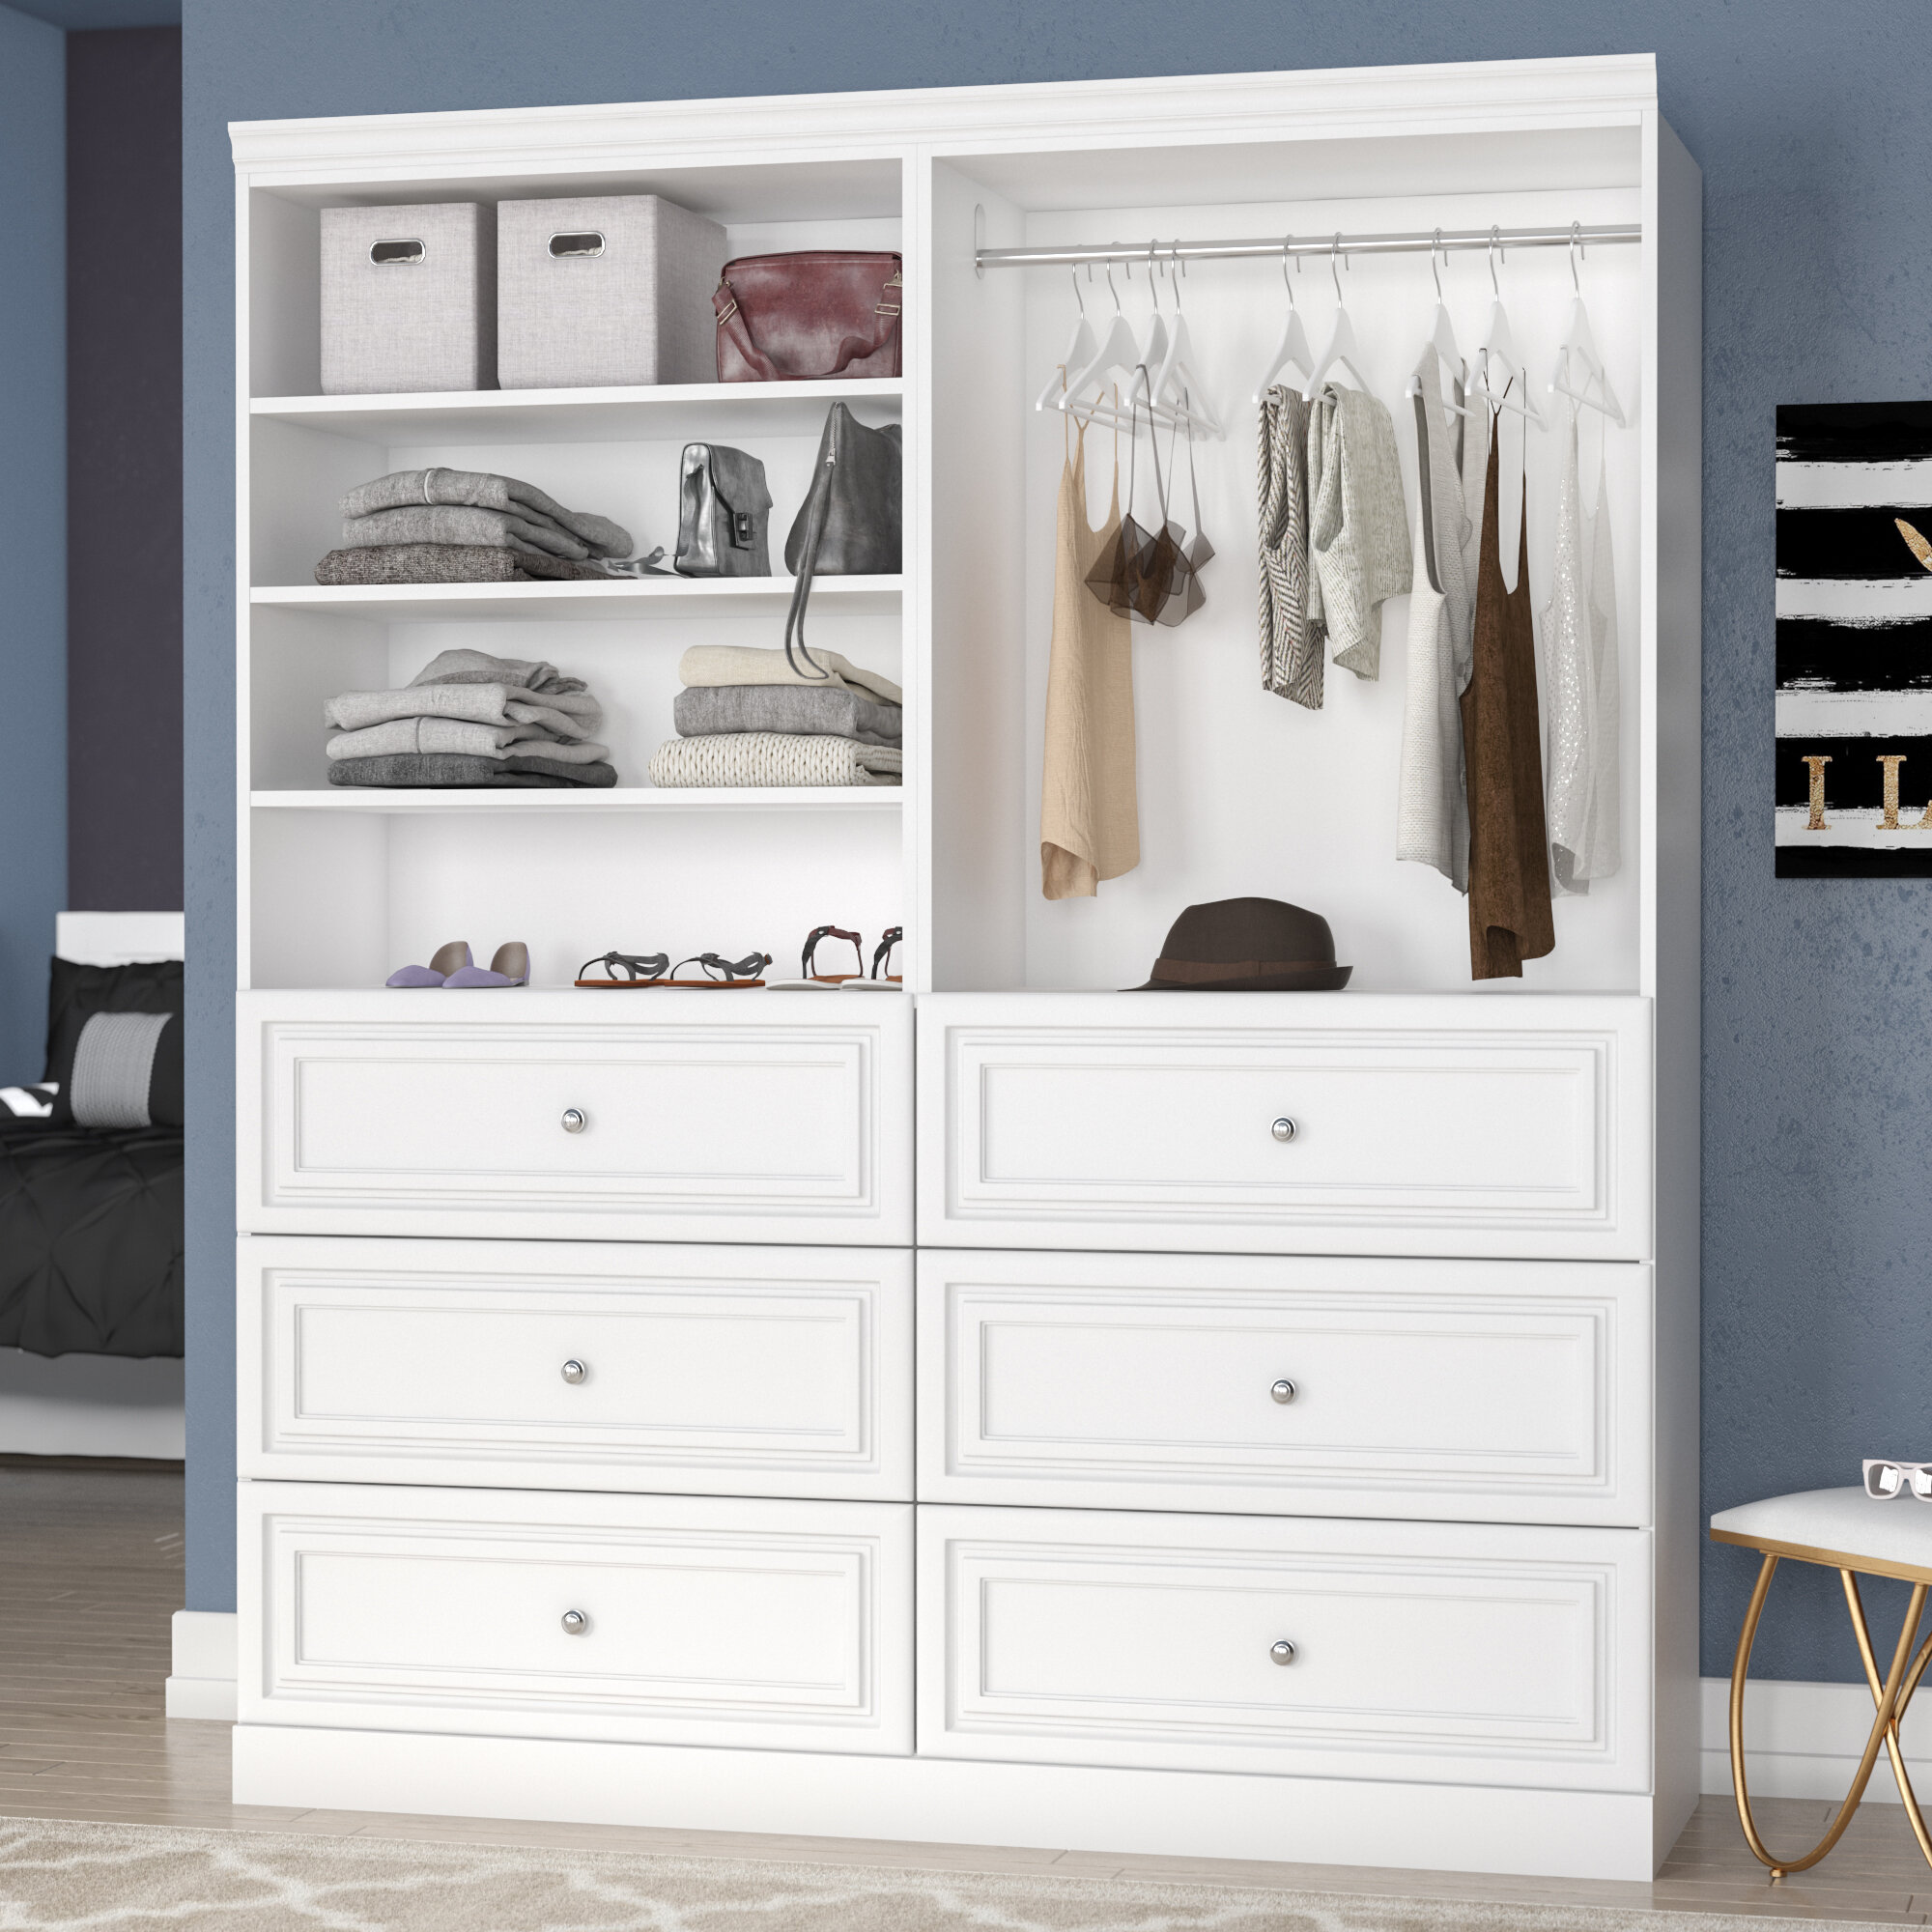 pictures diy a from buero build cabinet closet including wardrobe charming drawers trends doors in